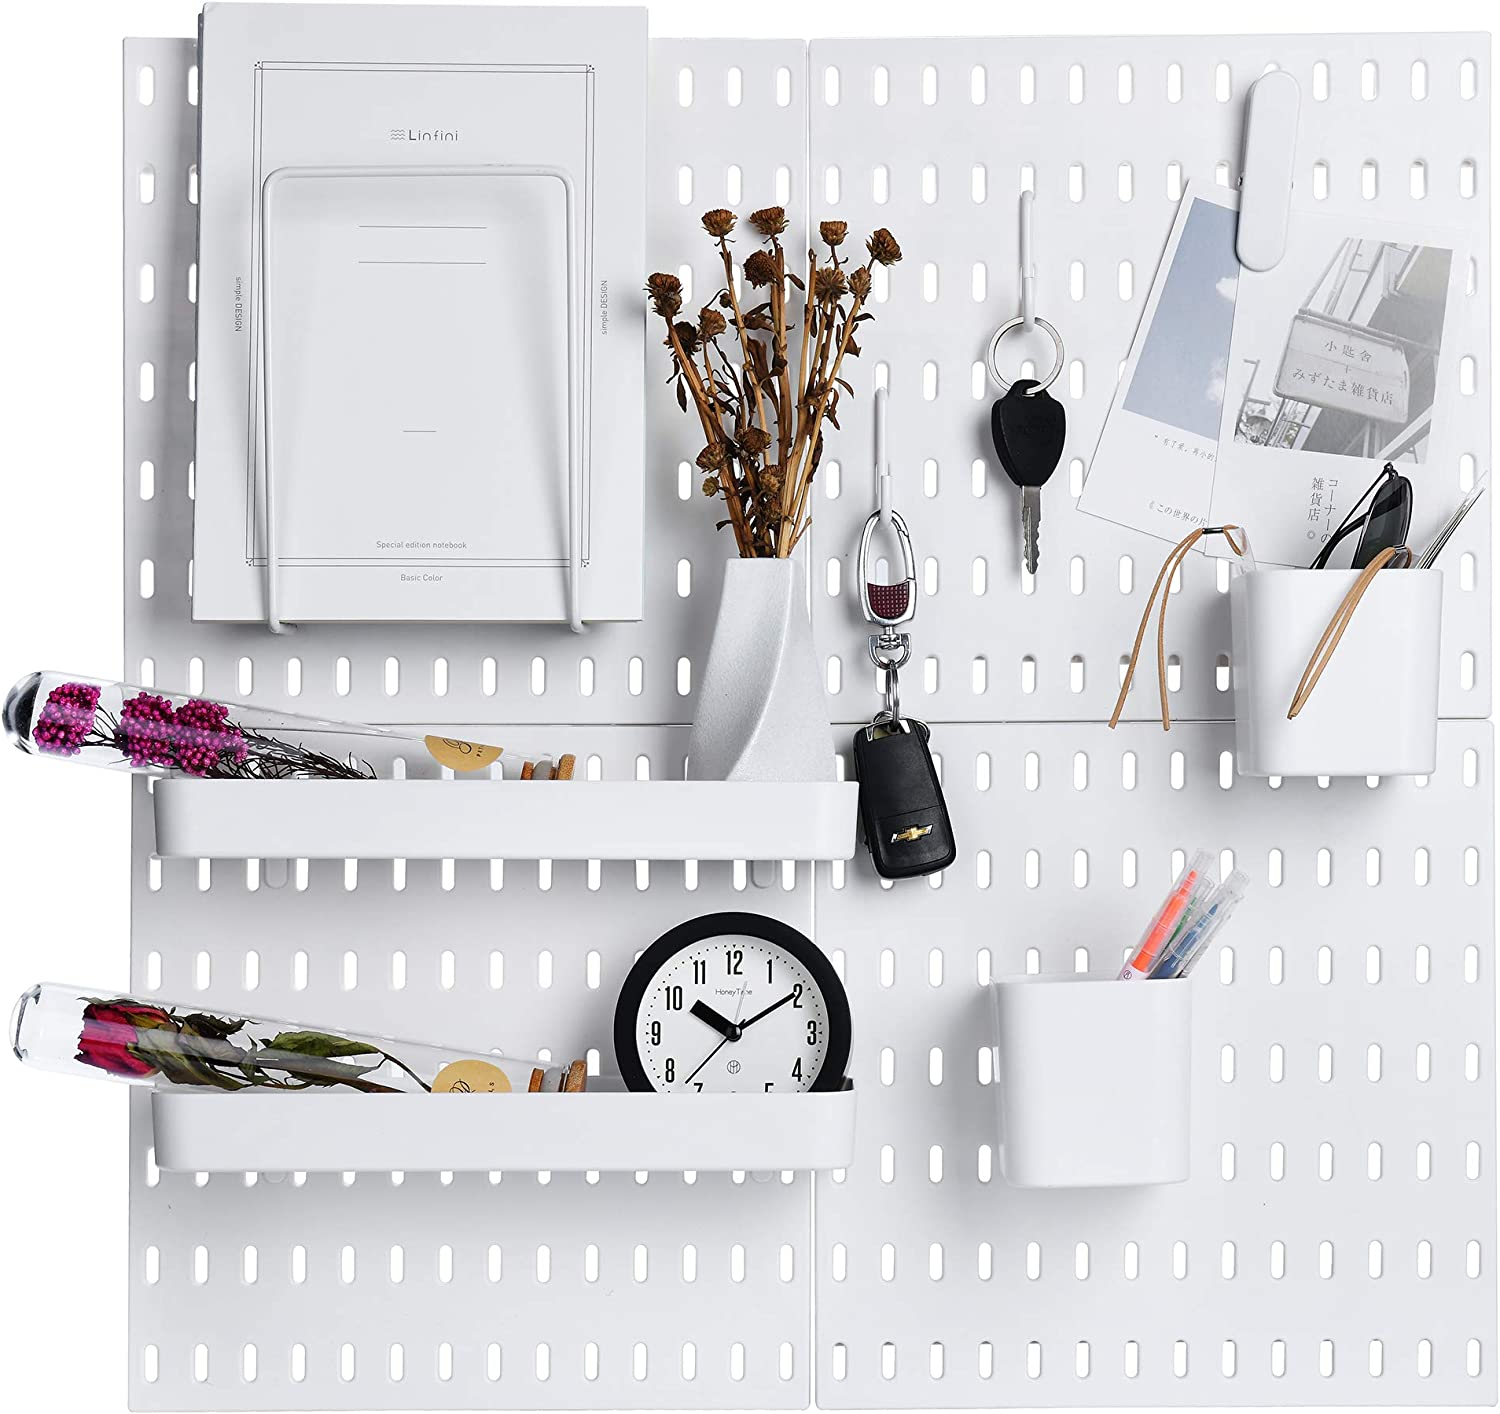 Keepo Pegboard Combination Kit with 4 Pegboards and 14 Accessories Modular Hanging for Wall Organizer, Crafts Organization, Ornaments Display, Nursery Storage, 22